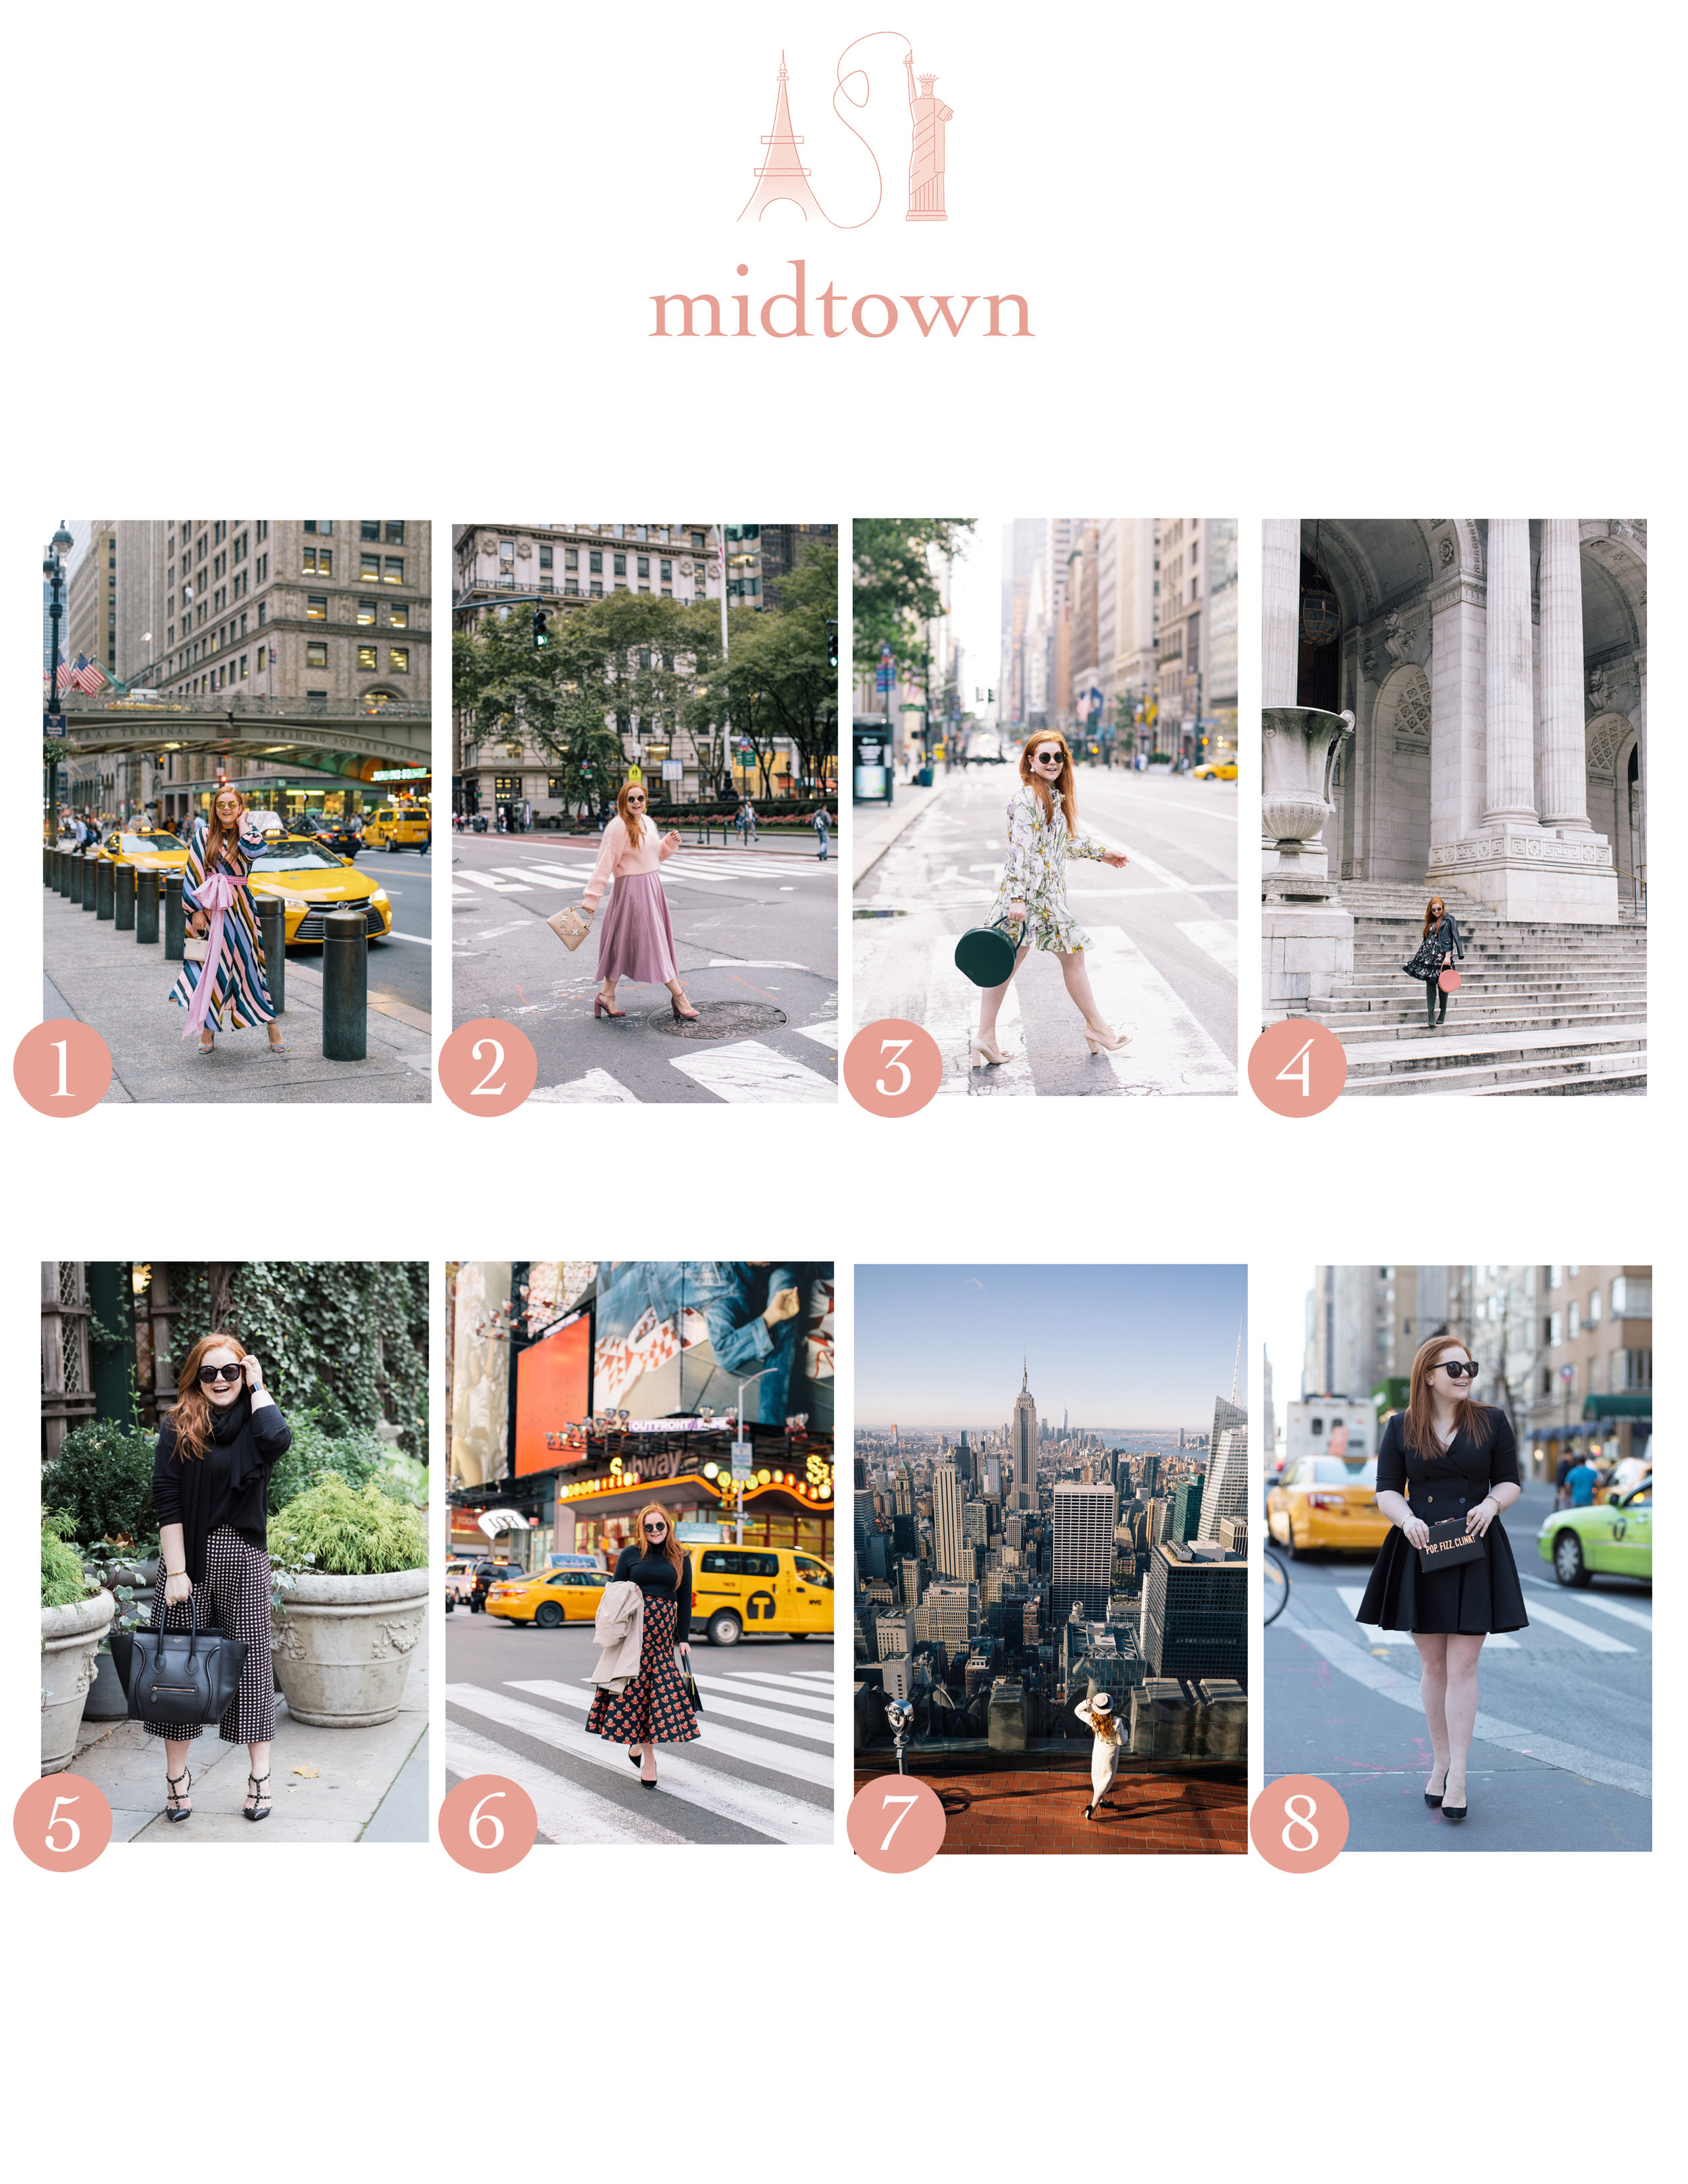 midtown_photo_locations.jpg